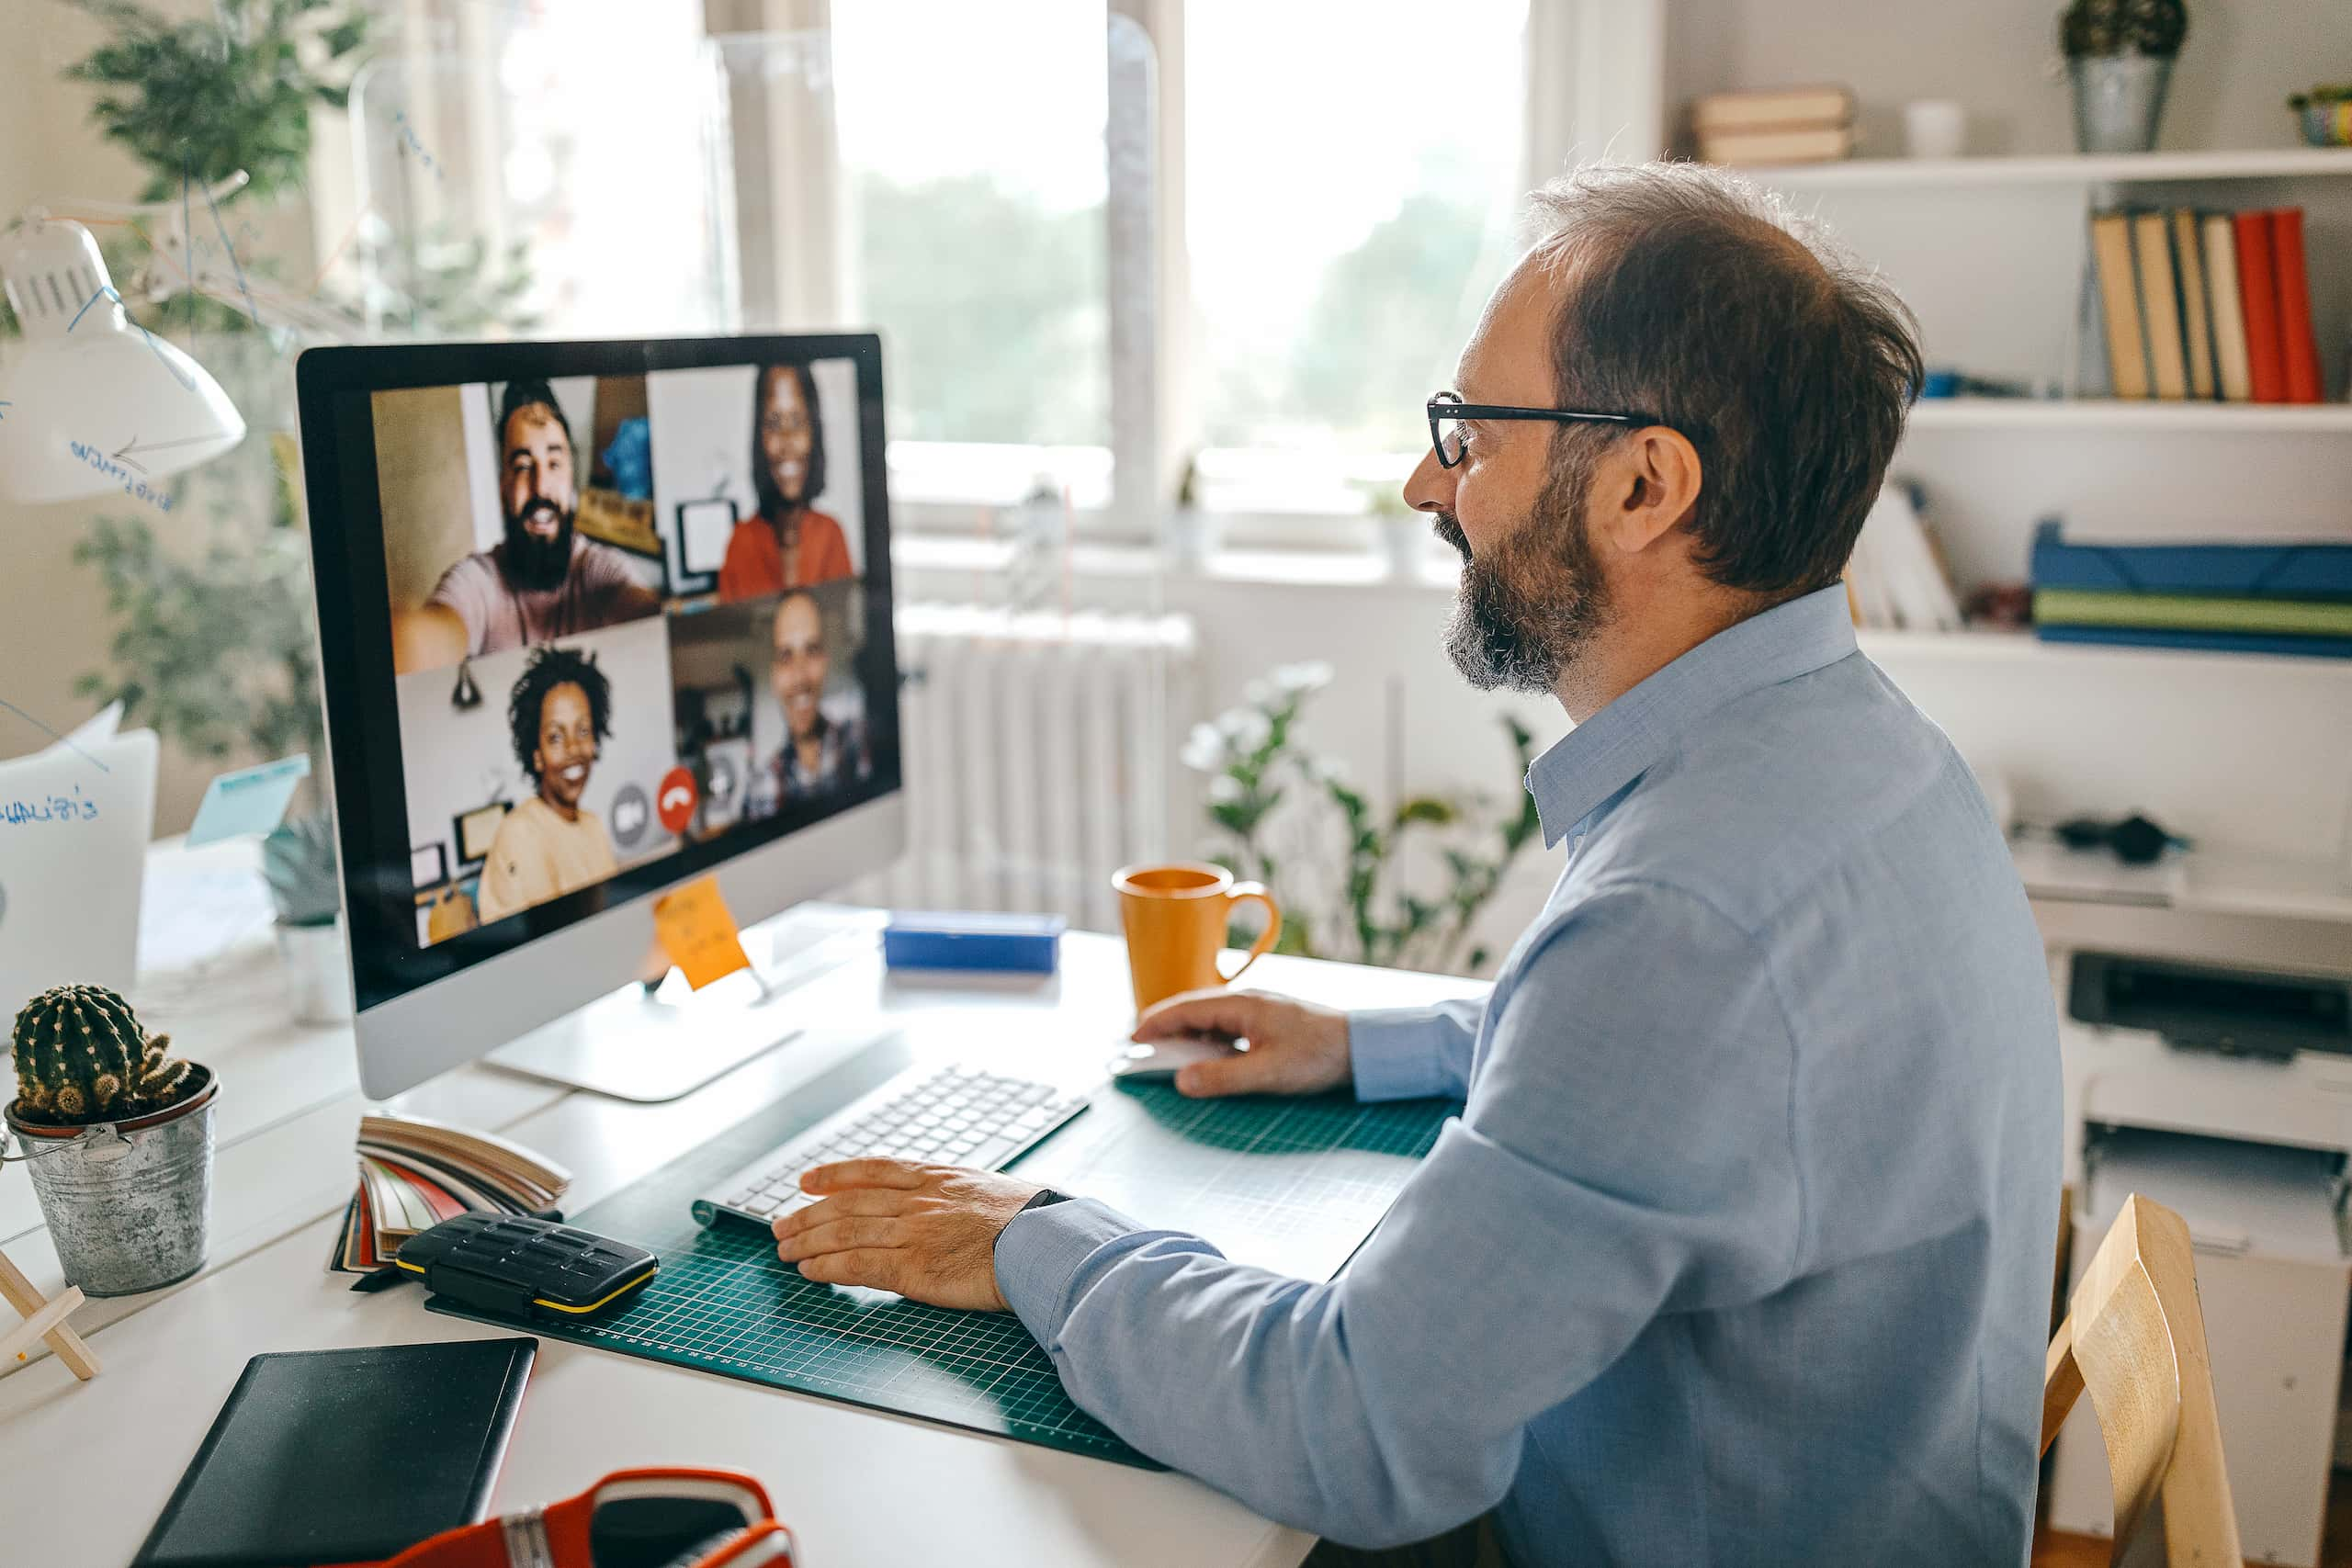 men video conference home office